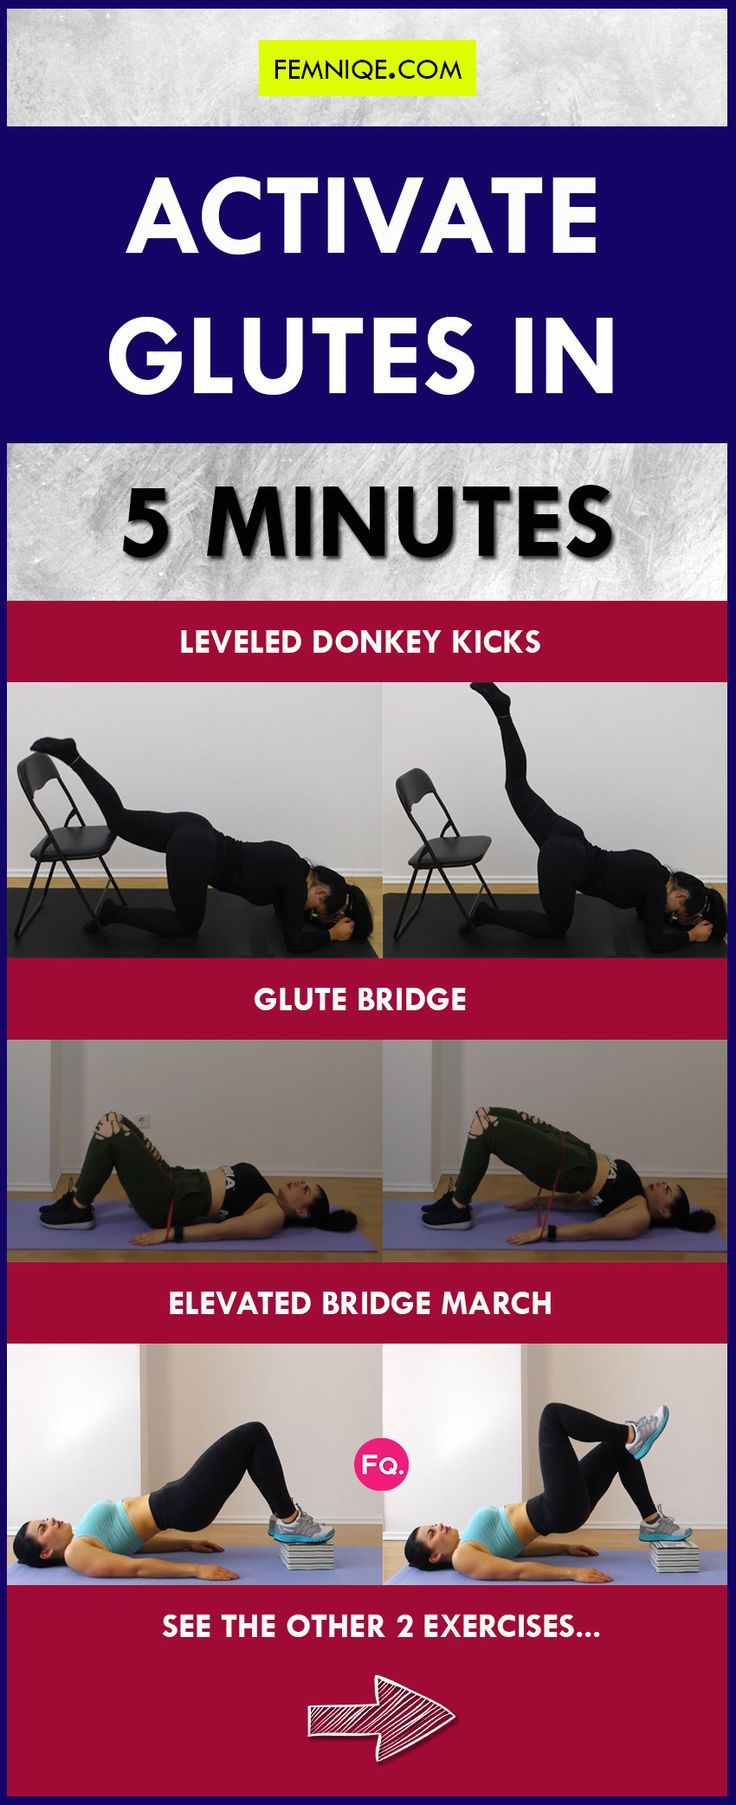 How To Activate Glutes In 5 Minutes Fire Them Up Activate Glutes Fitness Motivation Pictures Glutes Workout